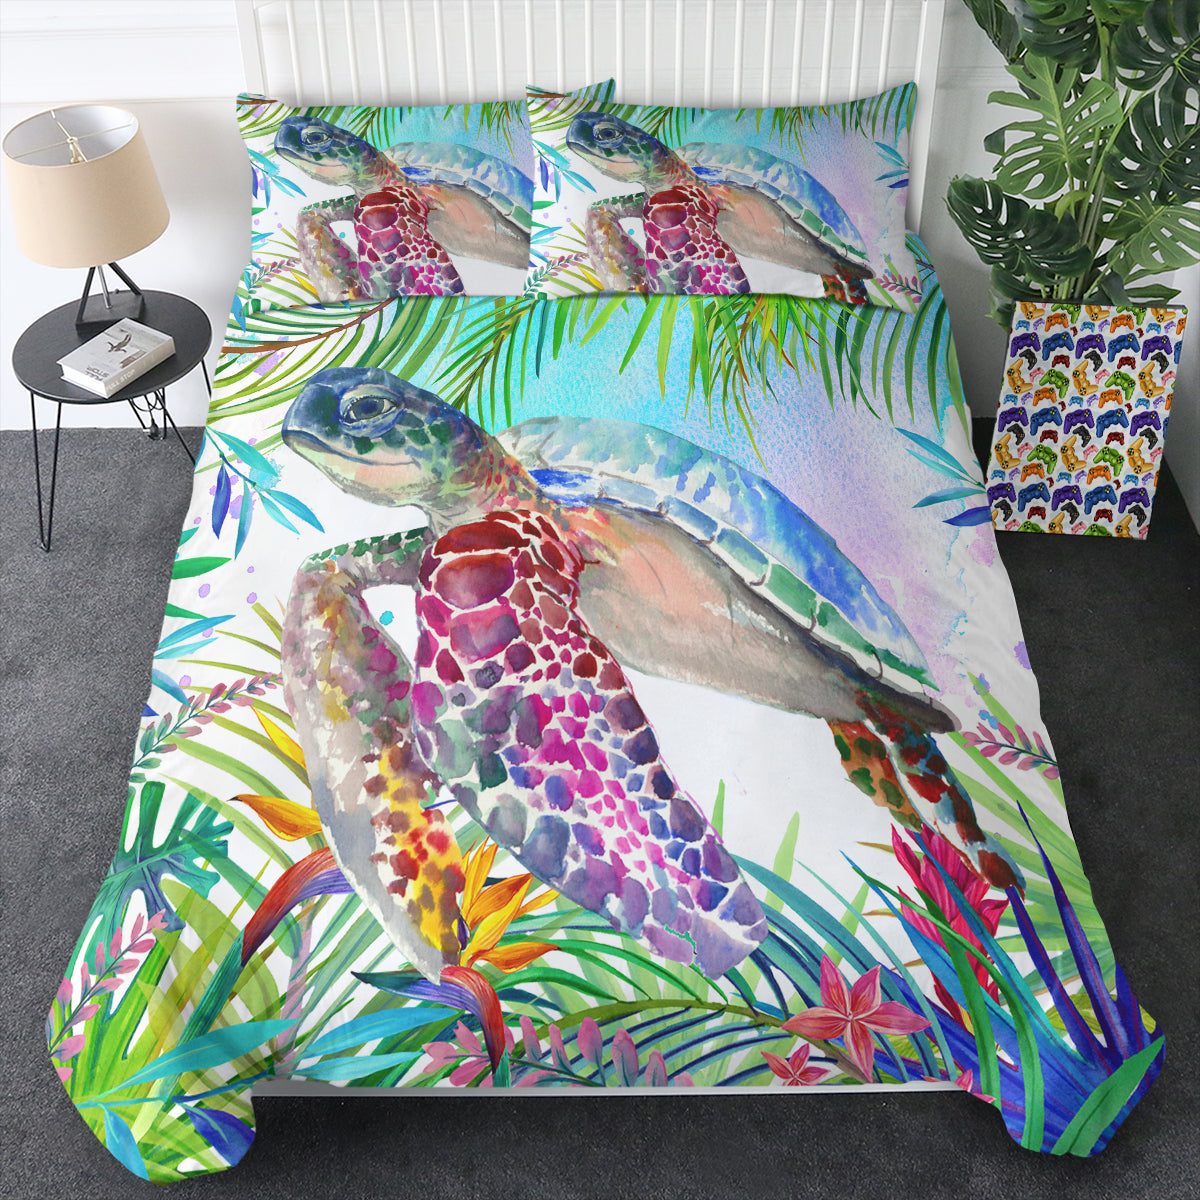 Tropical Sea Turtle Bedding Set